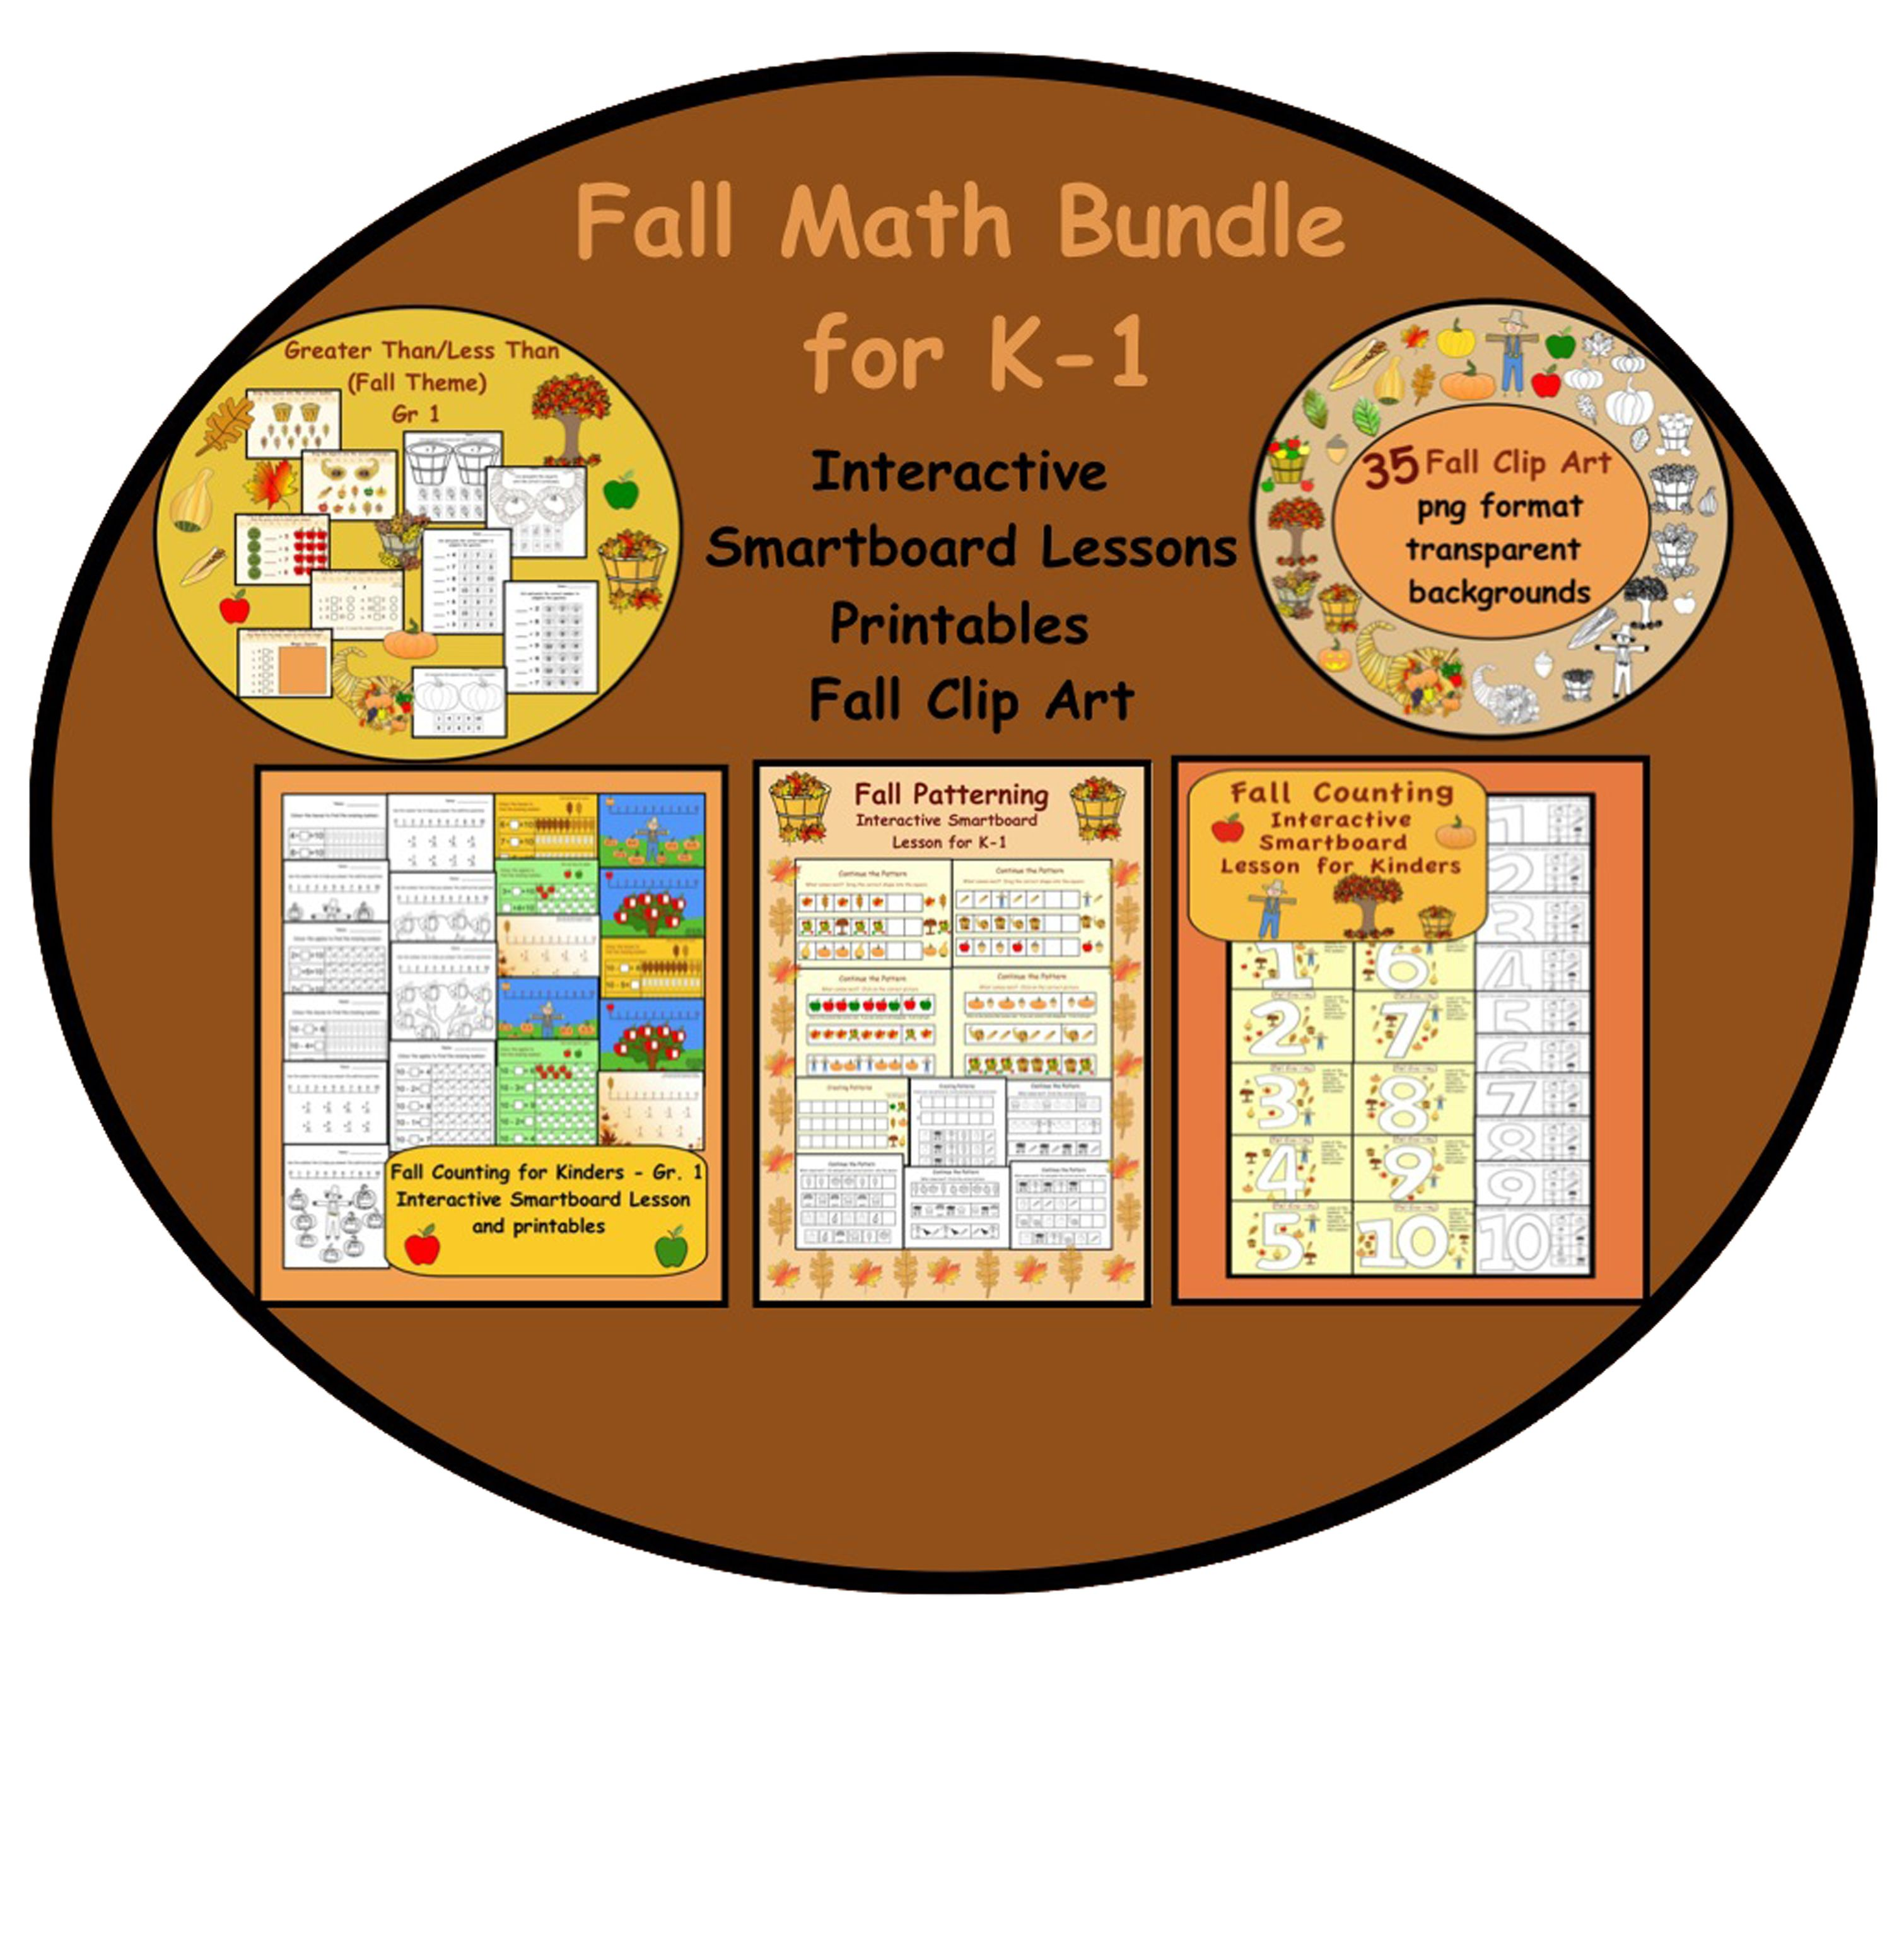 Fall Themed Smartboard Math Activities For K 1